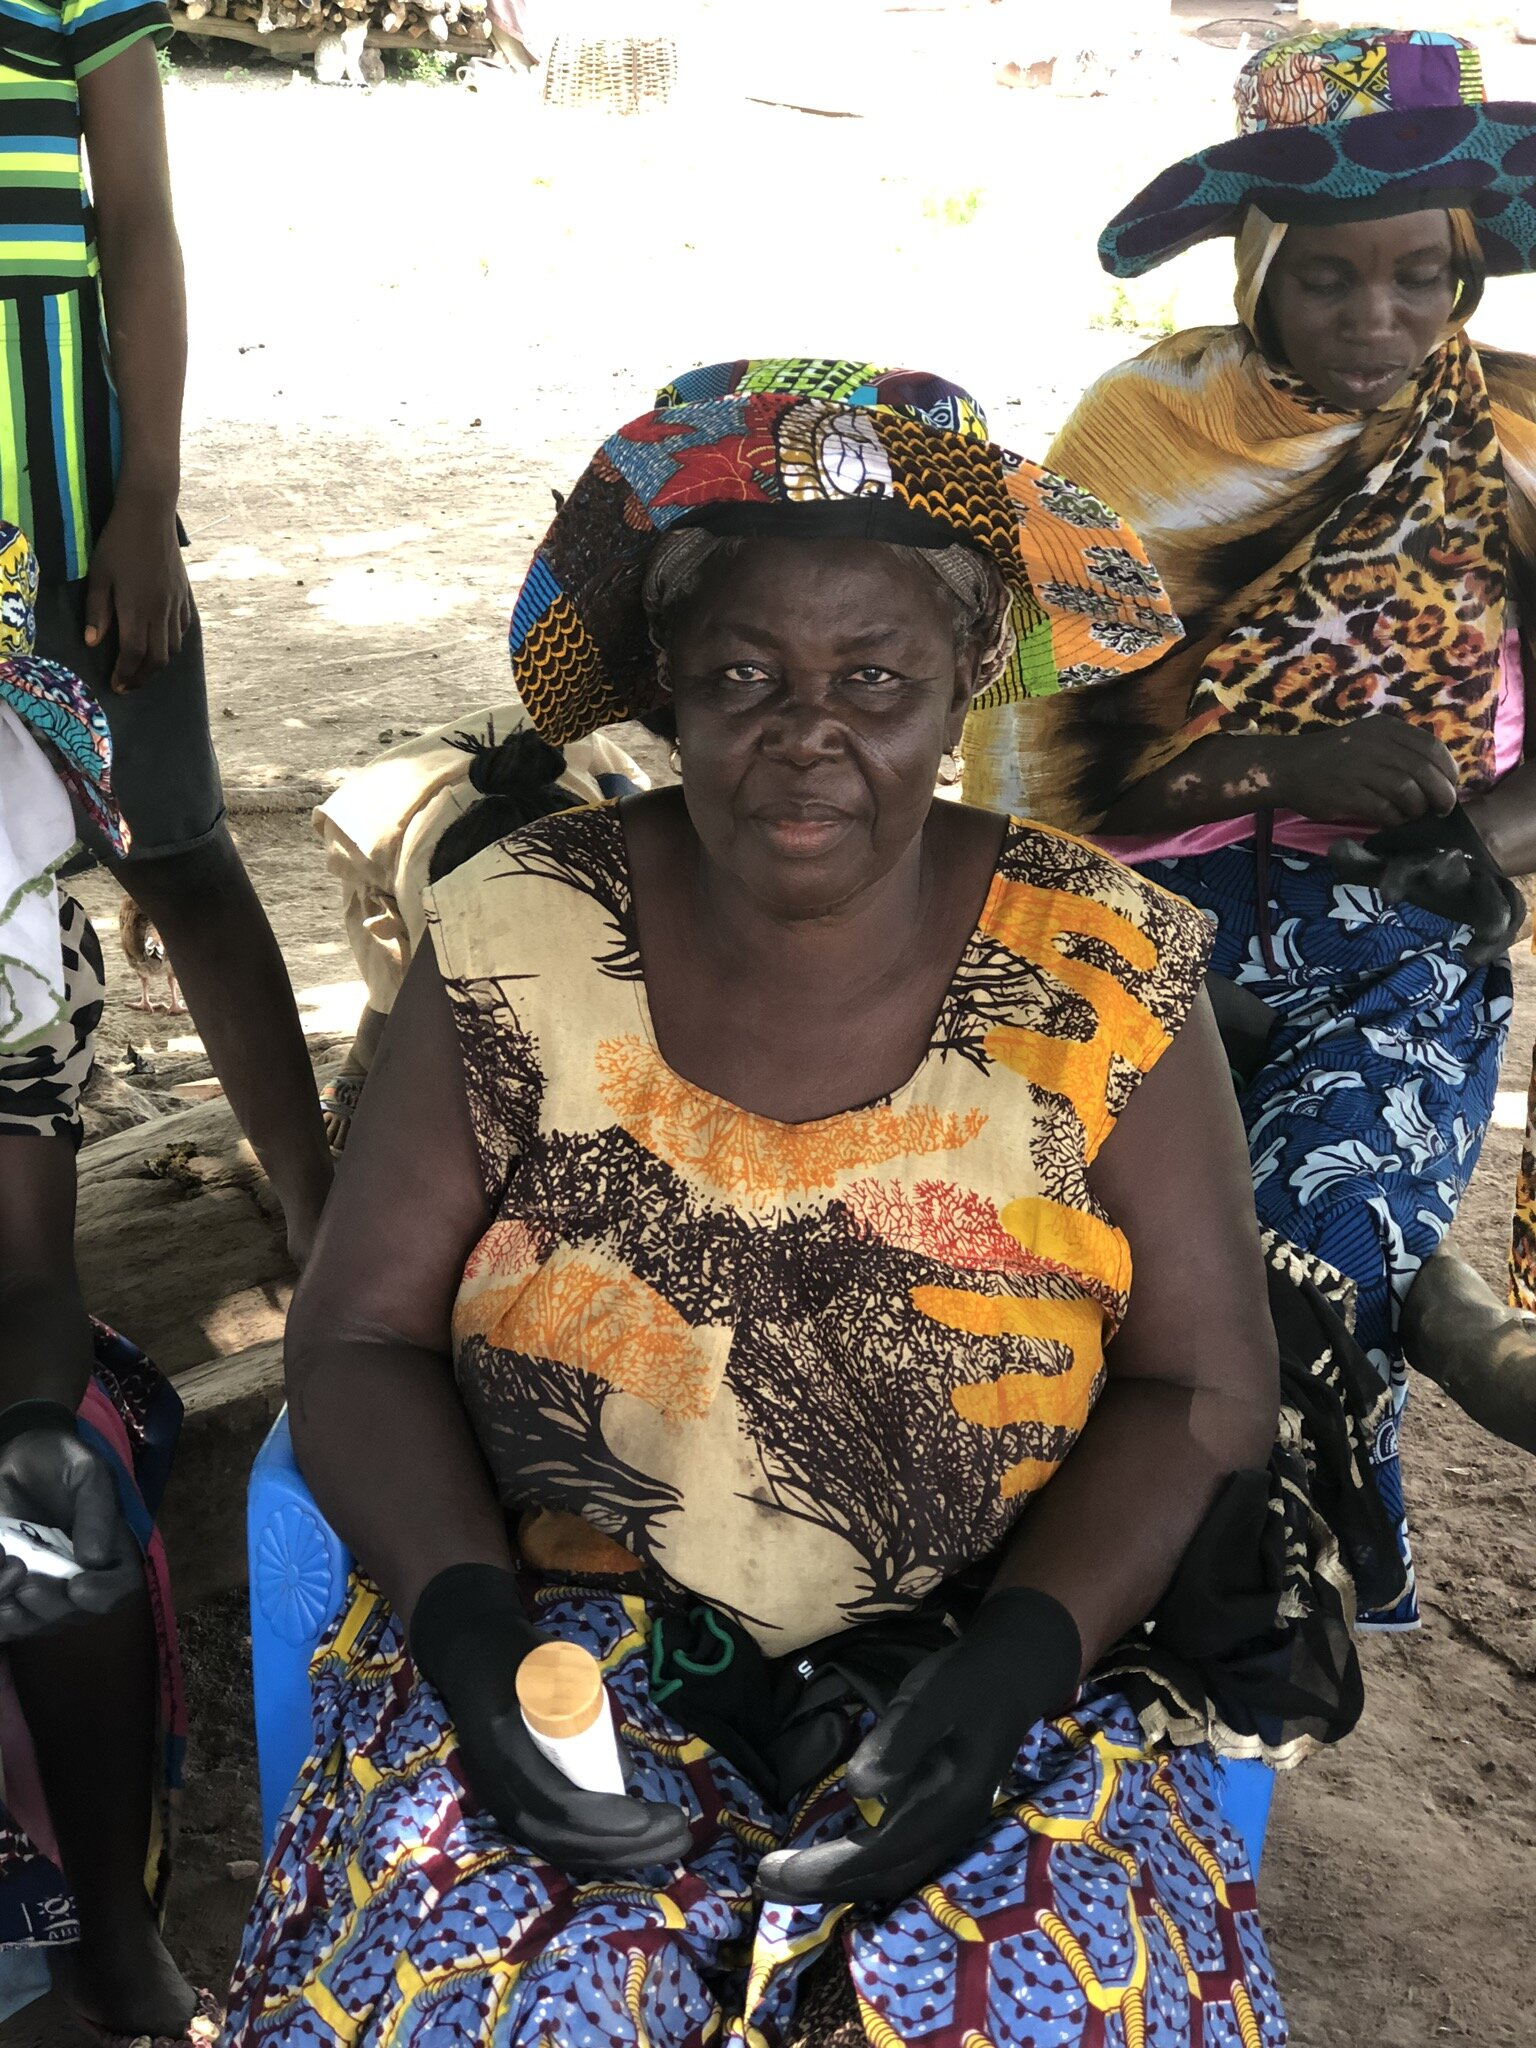 A shea tree farmer in Ghana sits in a chair with her new sun hat and rubber gloves